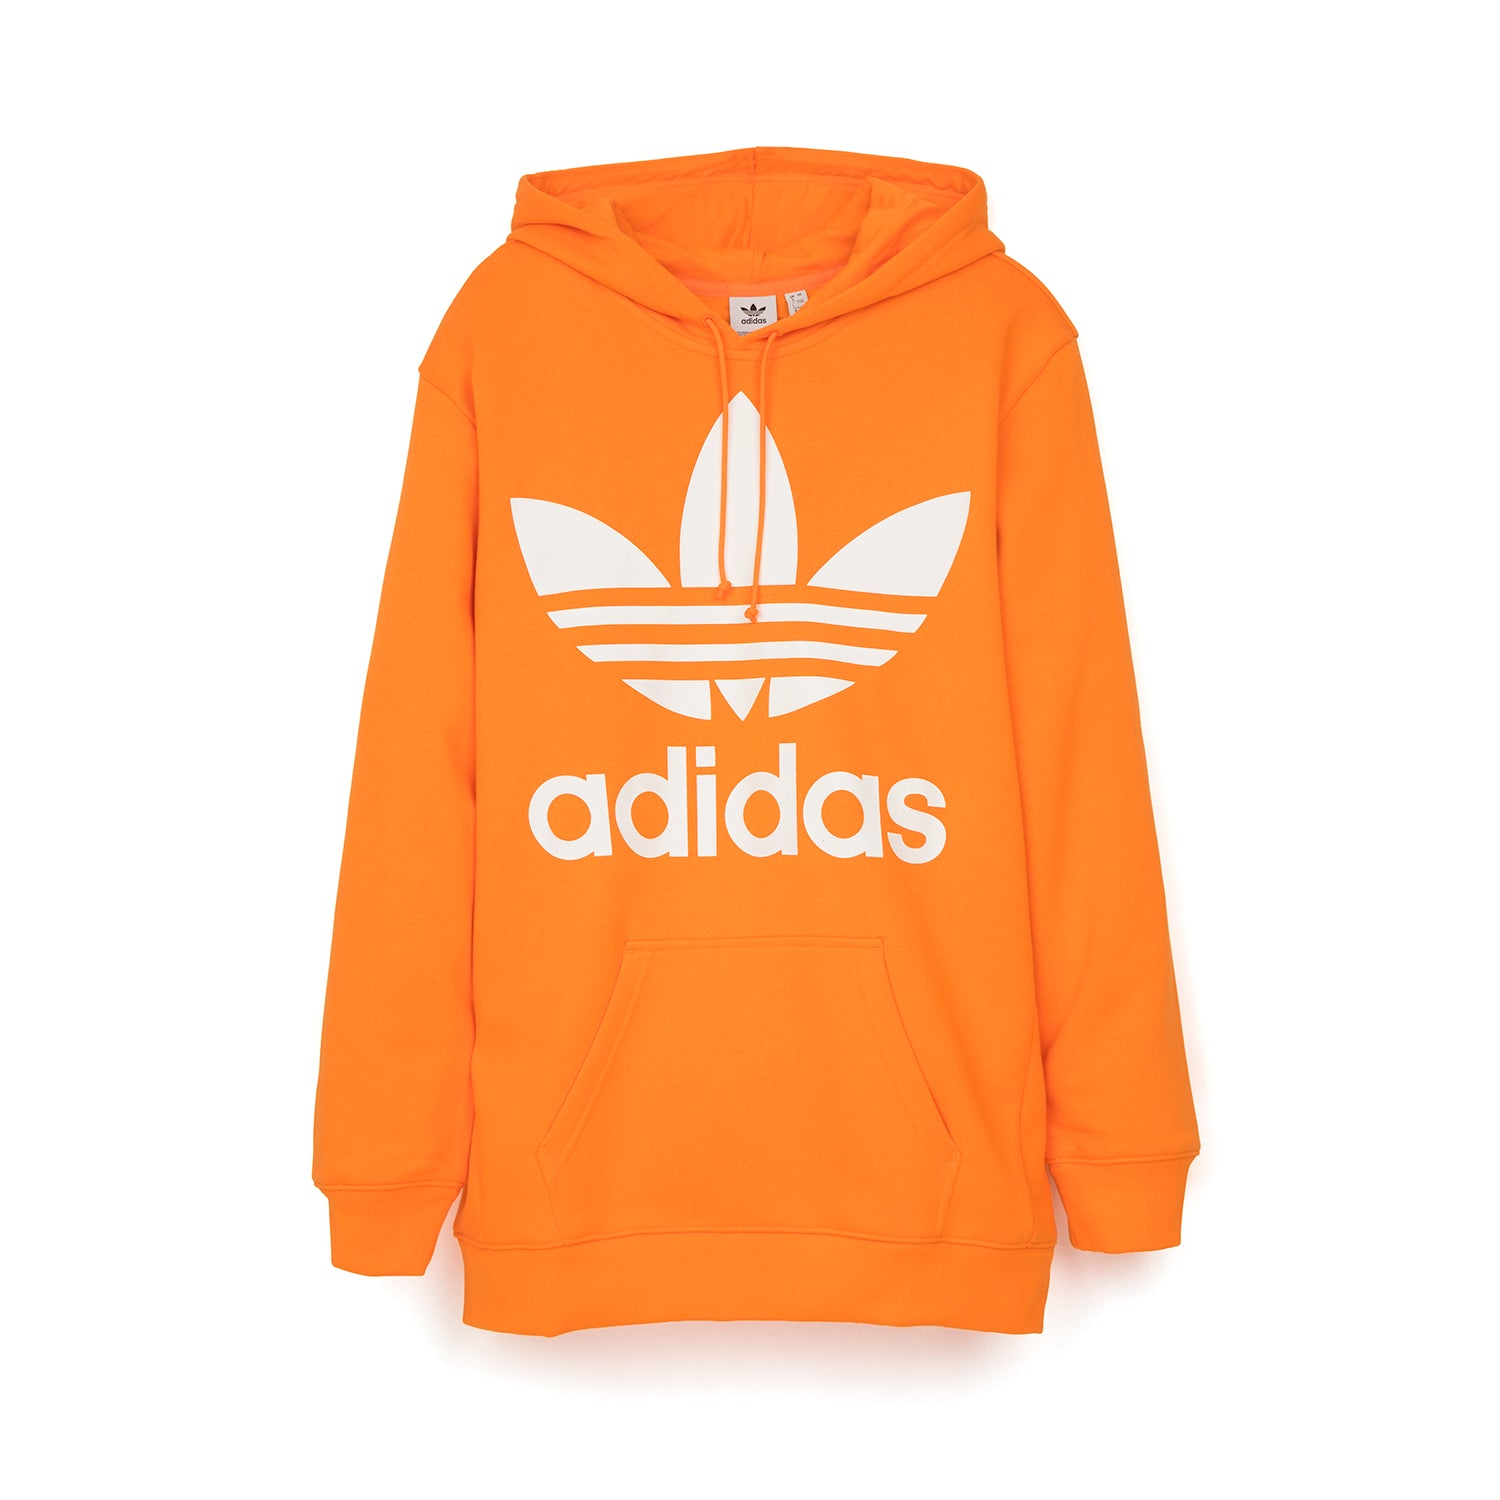 adidas Originals Oversized Trefoil Hoodie Orange  Orange